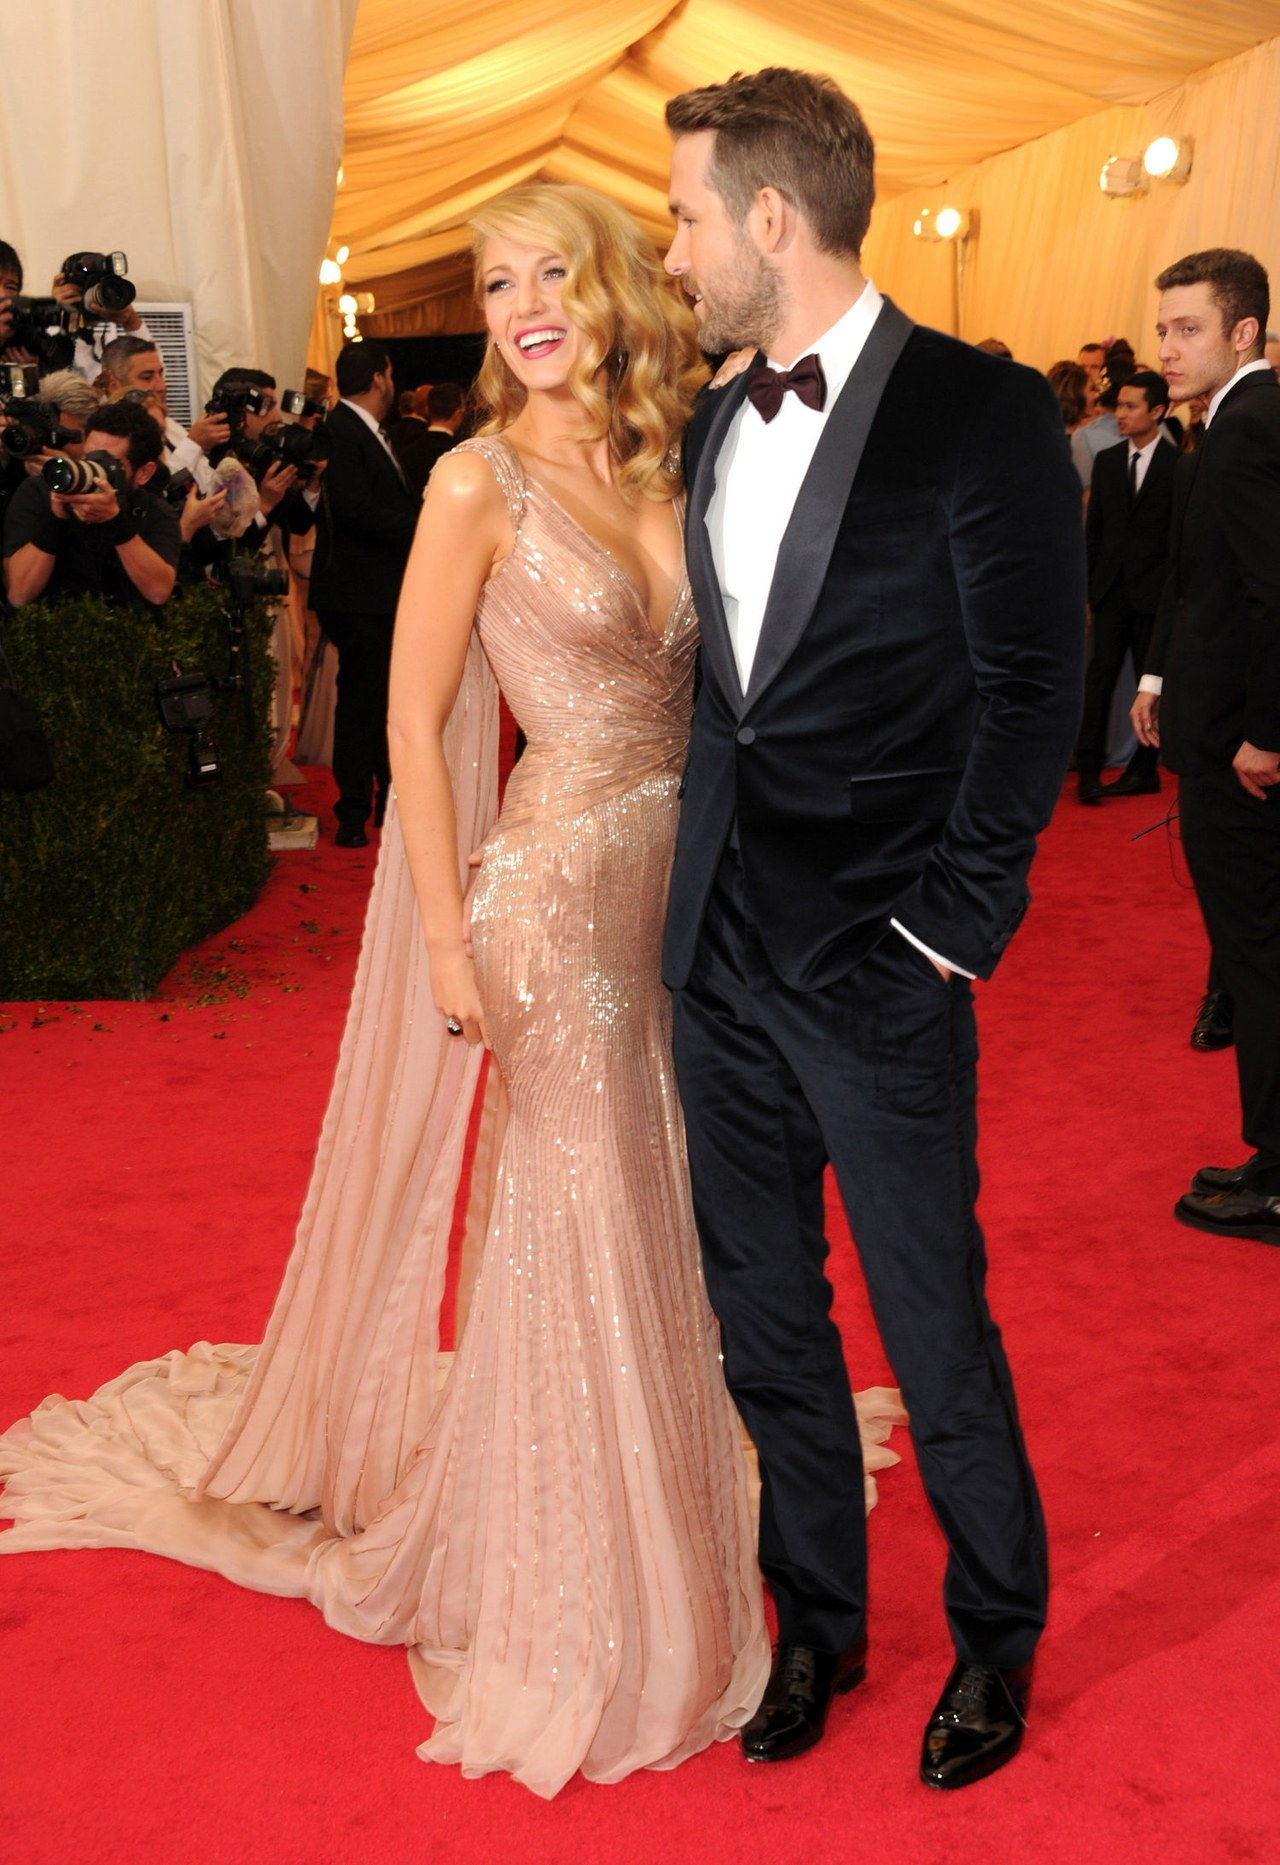 Blake lively gucci dress ryan reynolds